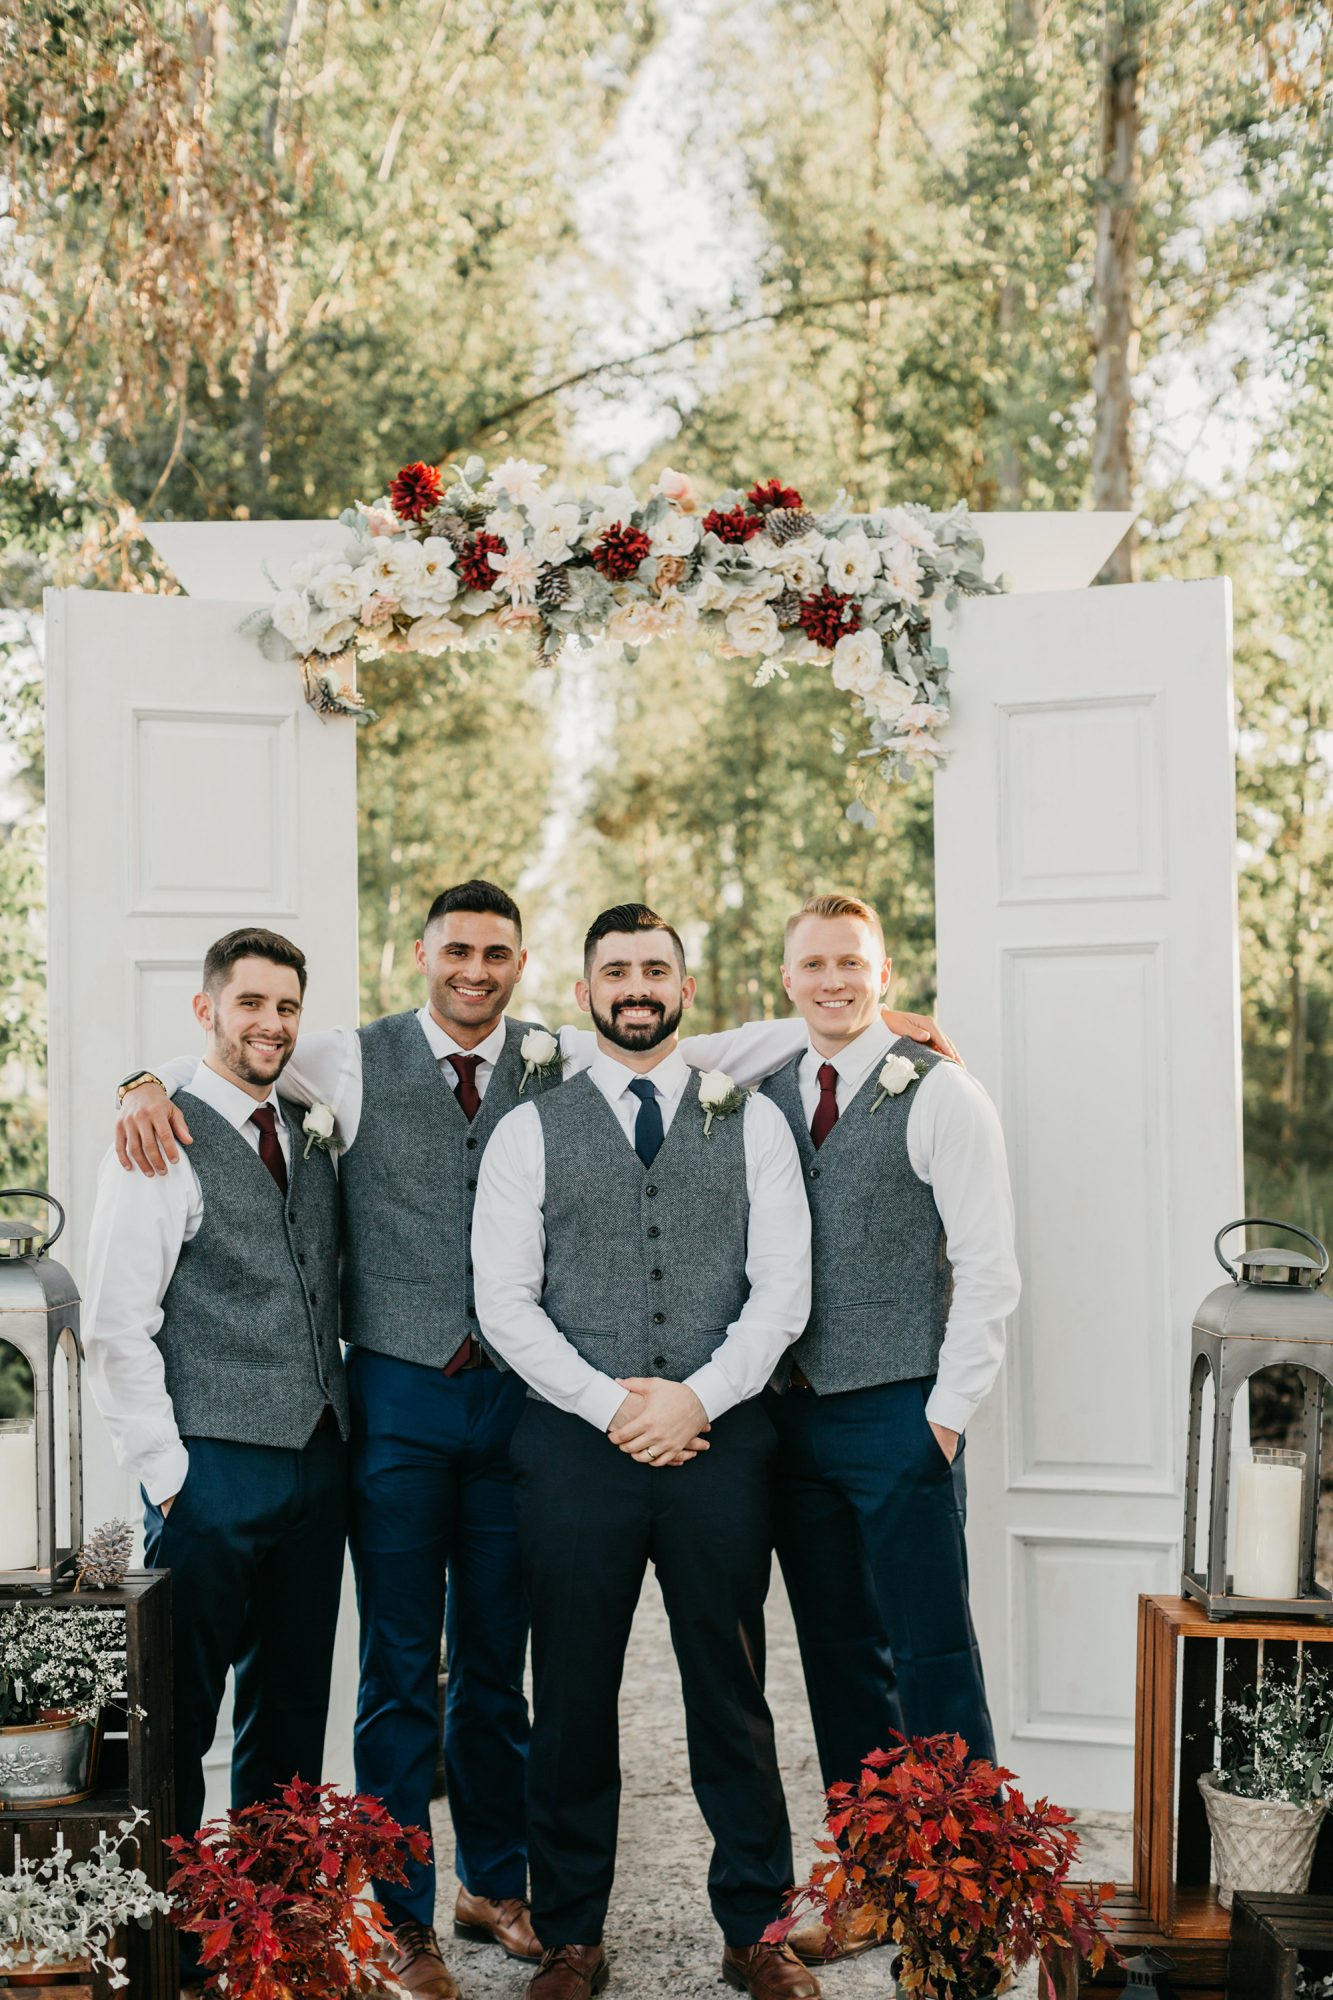 Red Groomsmen Attire